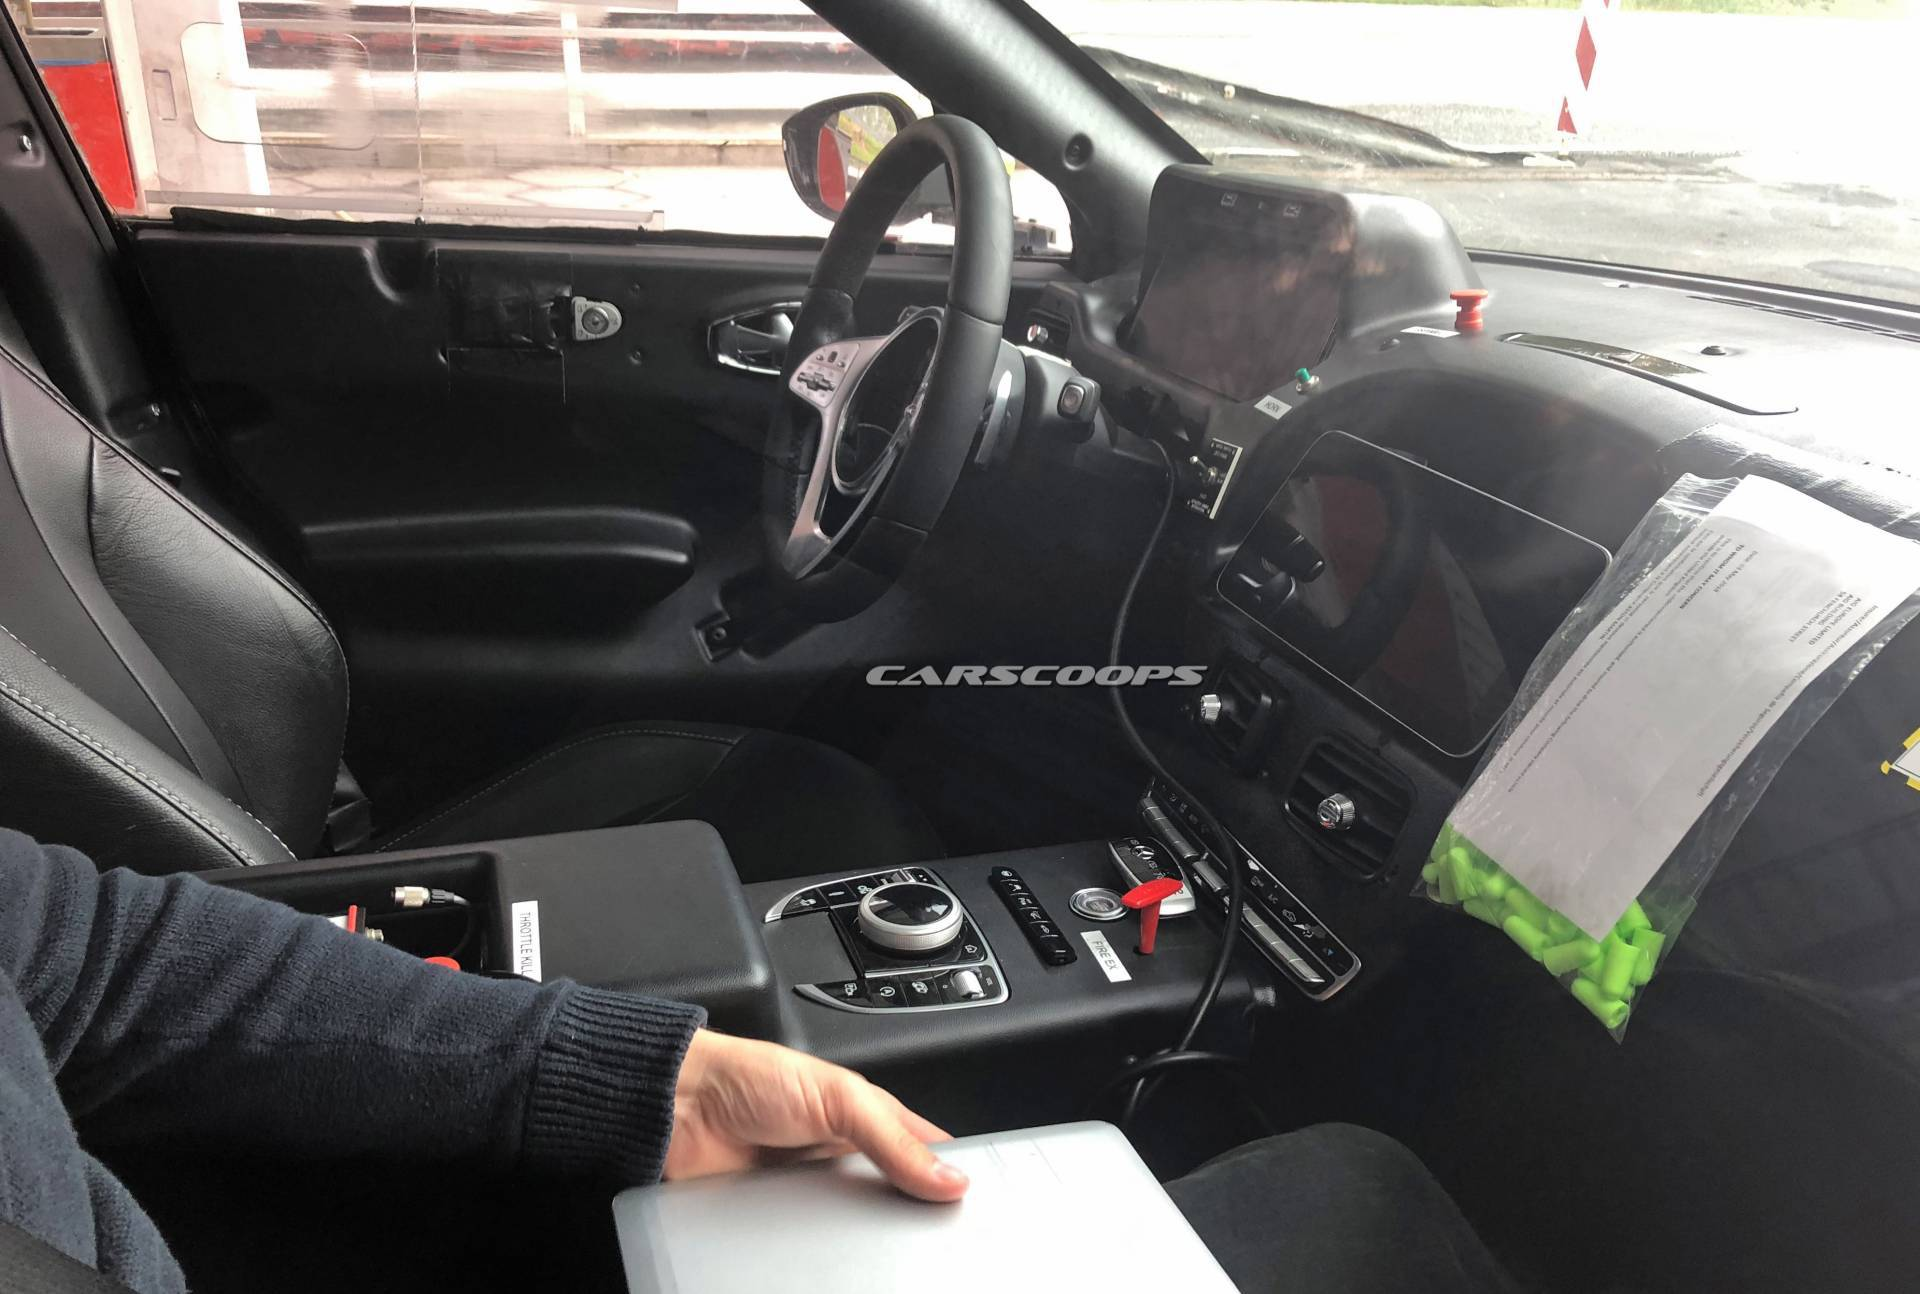 2020 Aston Martin Dbx Gives Us A Better Look At Its Interior And Mercedes Switchgear Carscoops